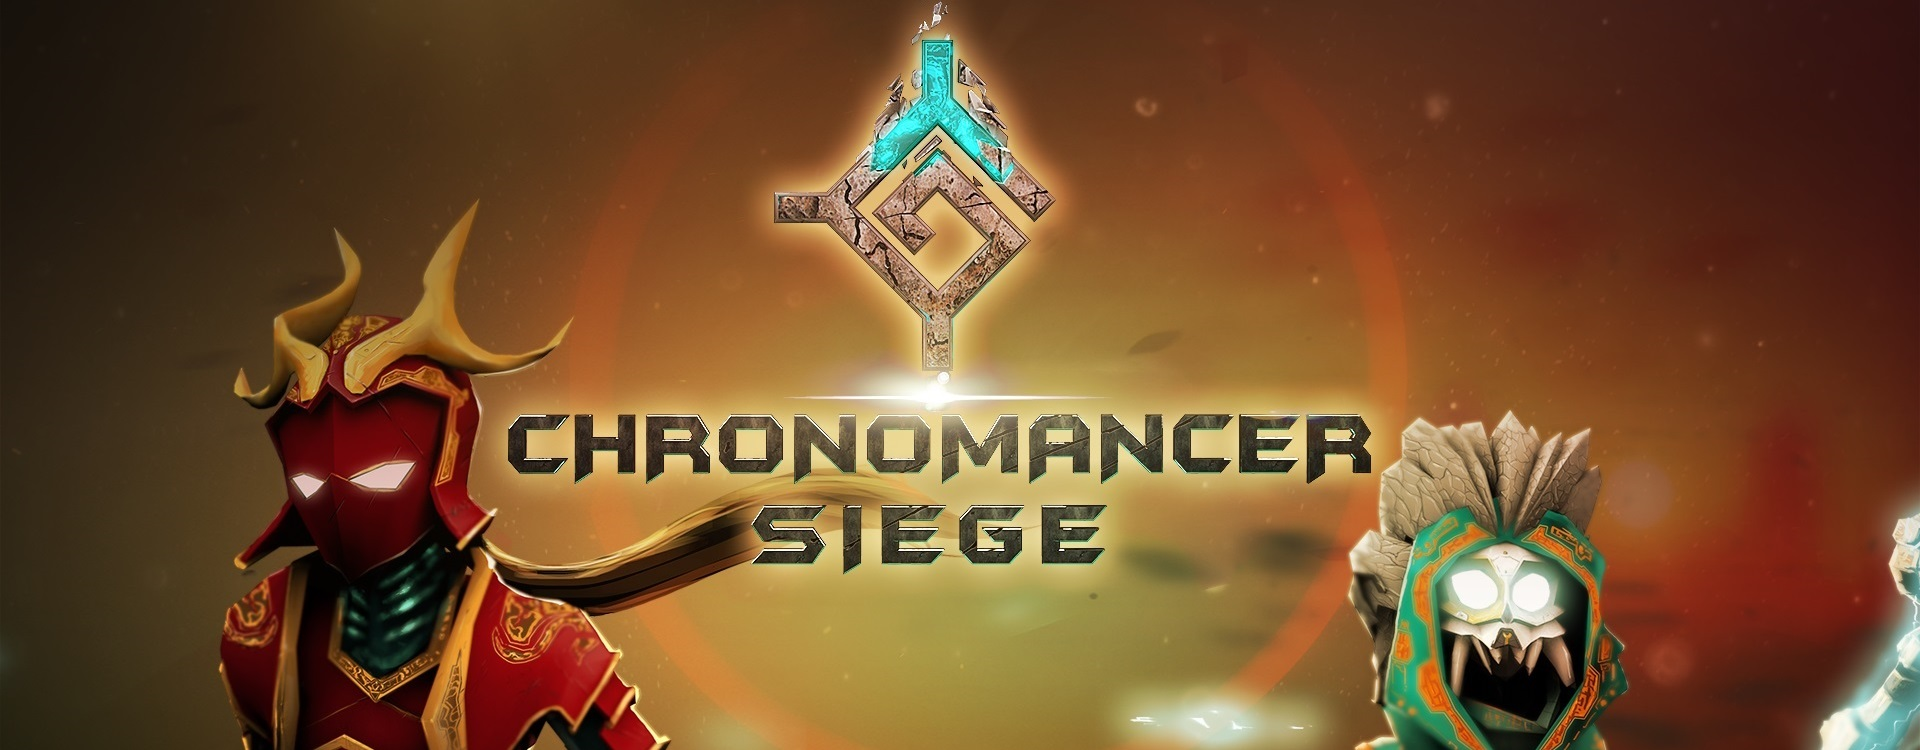 Chronomancer Siege